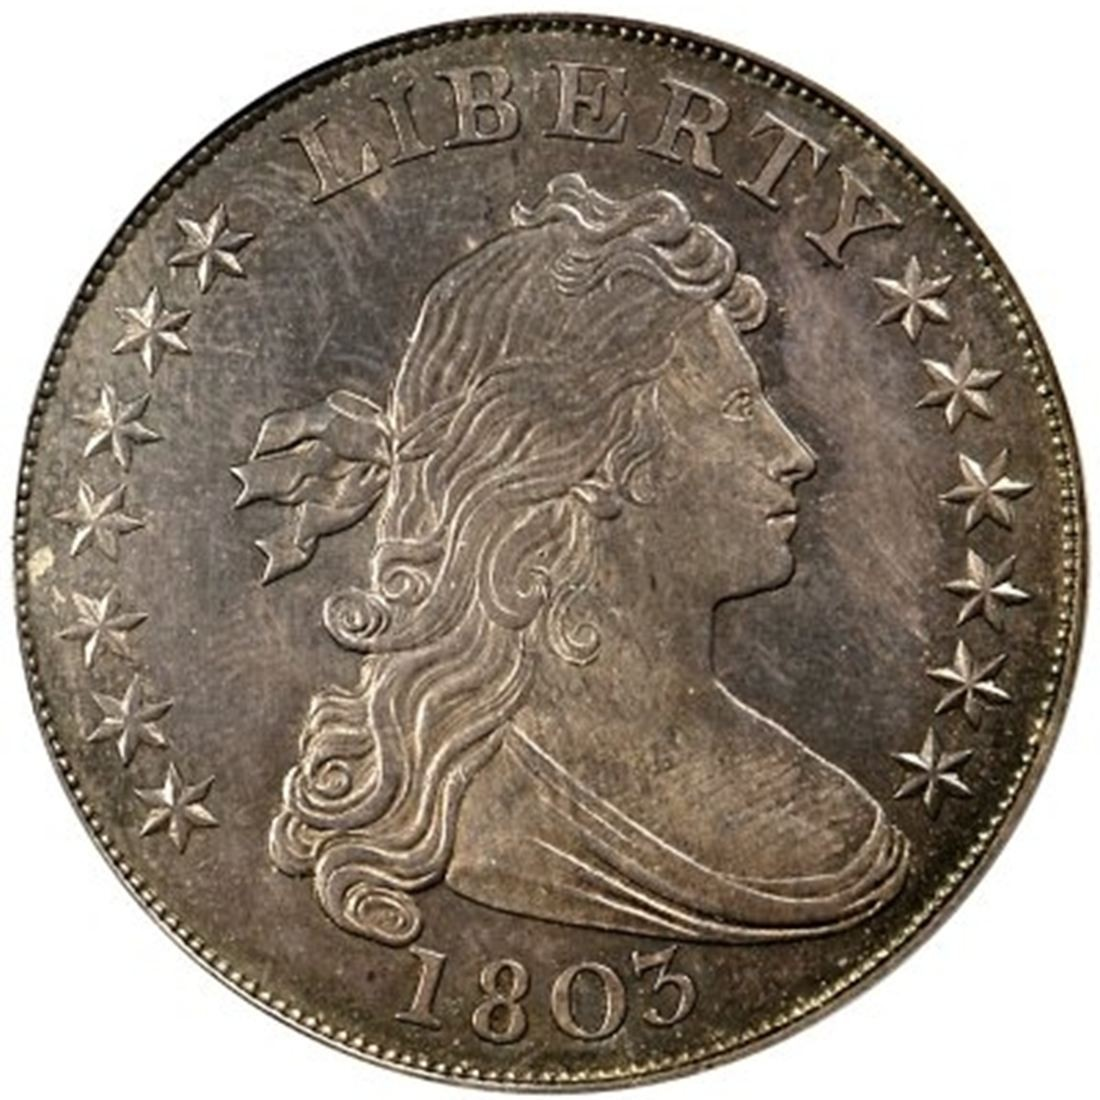 1803 Draped Bust Silver Dollar Values And Prices Past